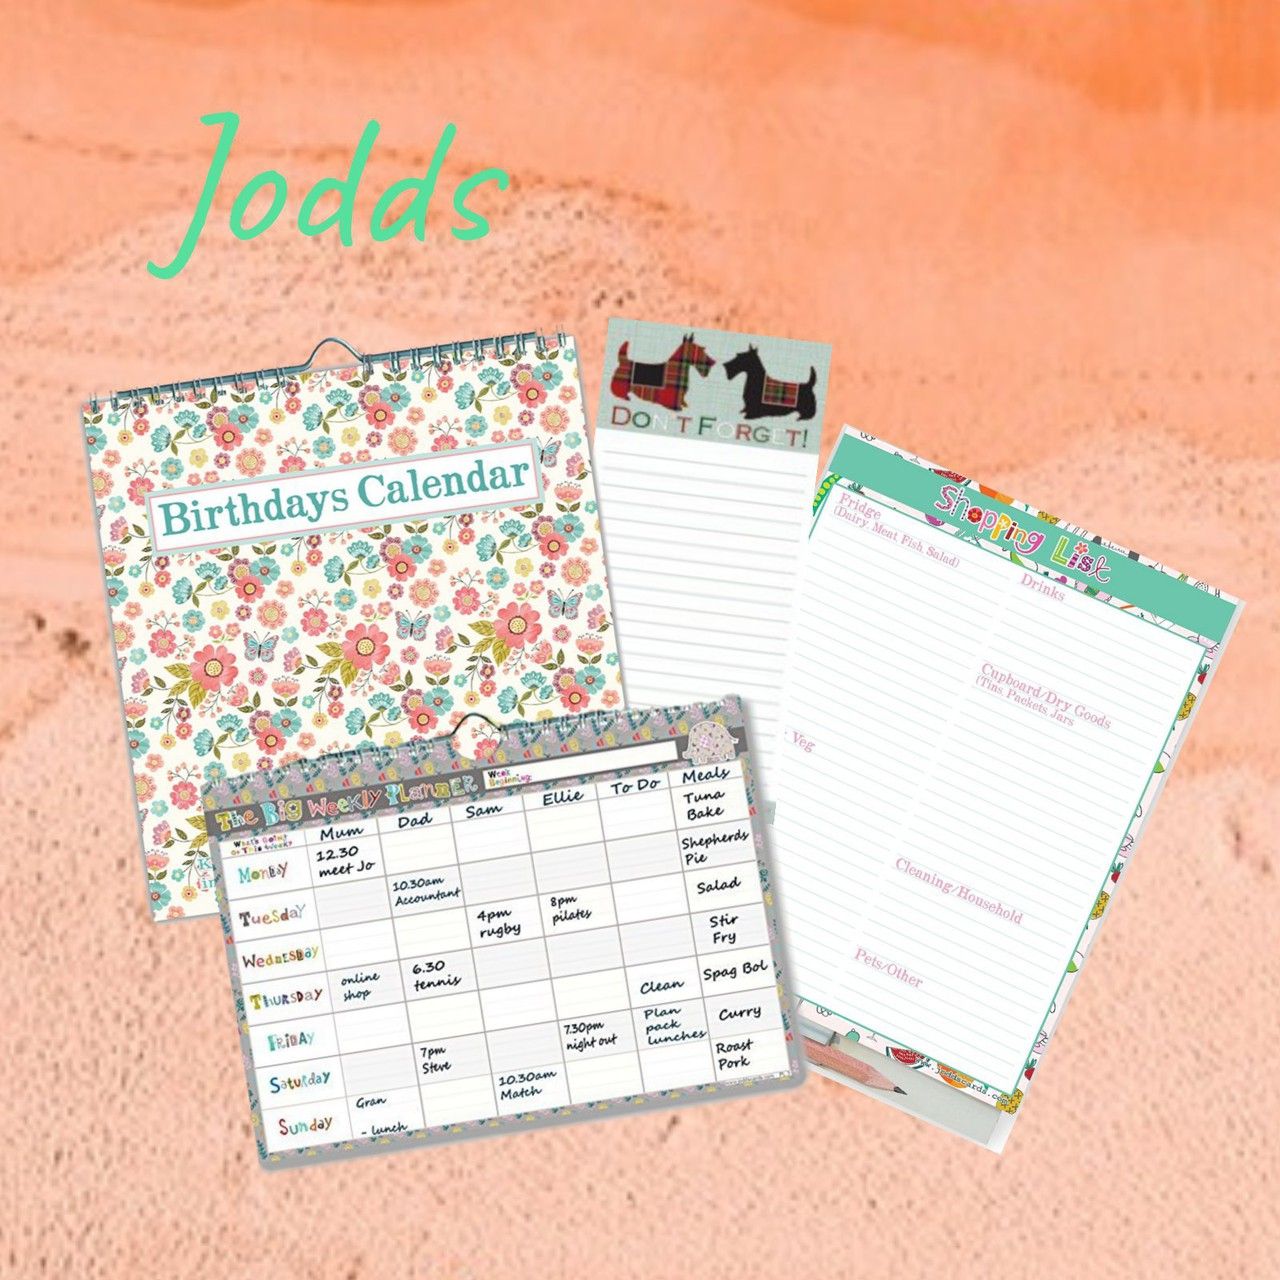 jodds card and organised stationery